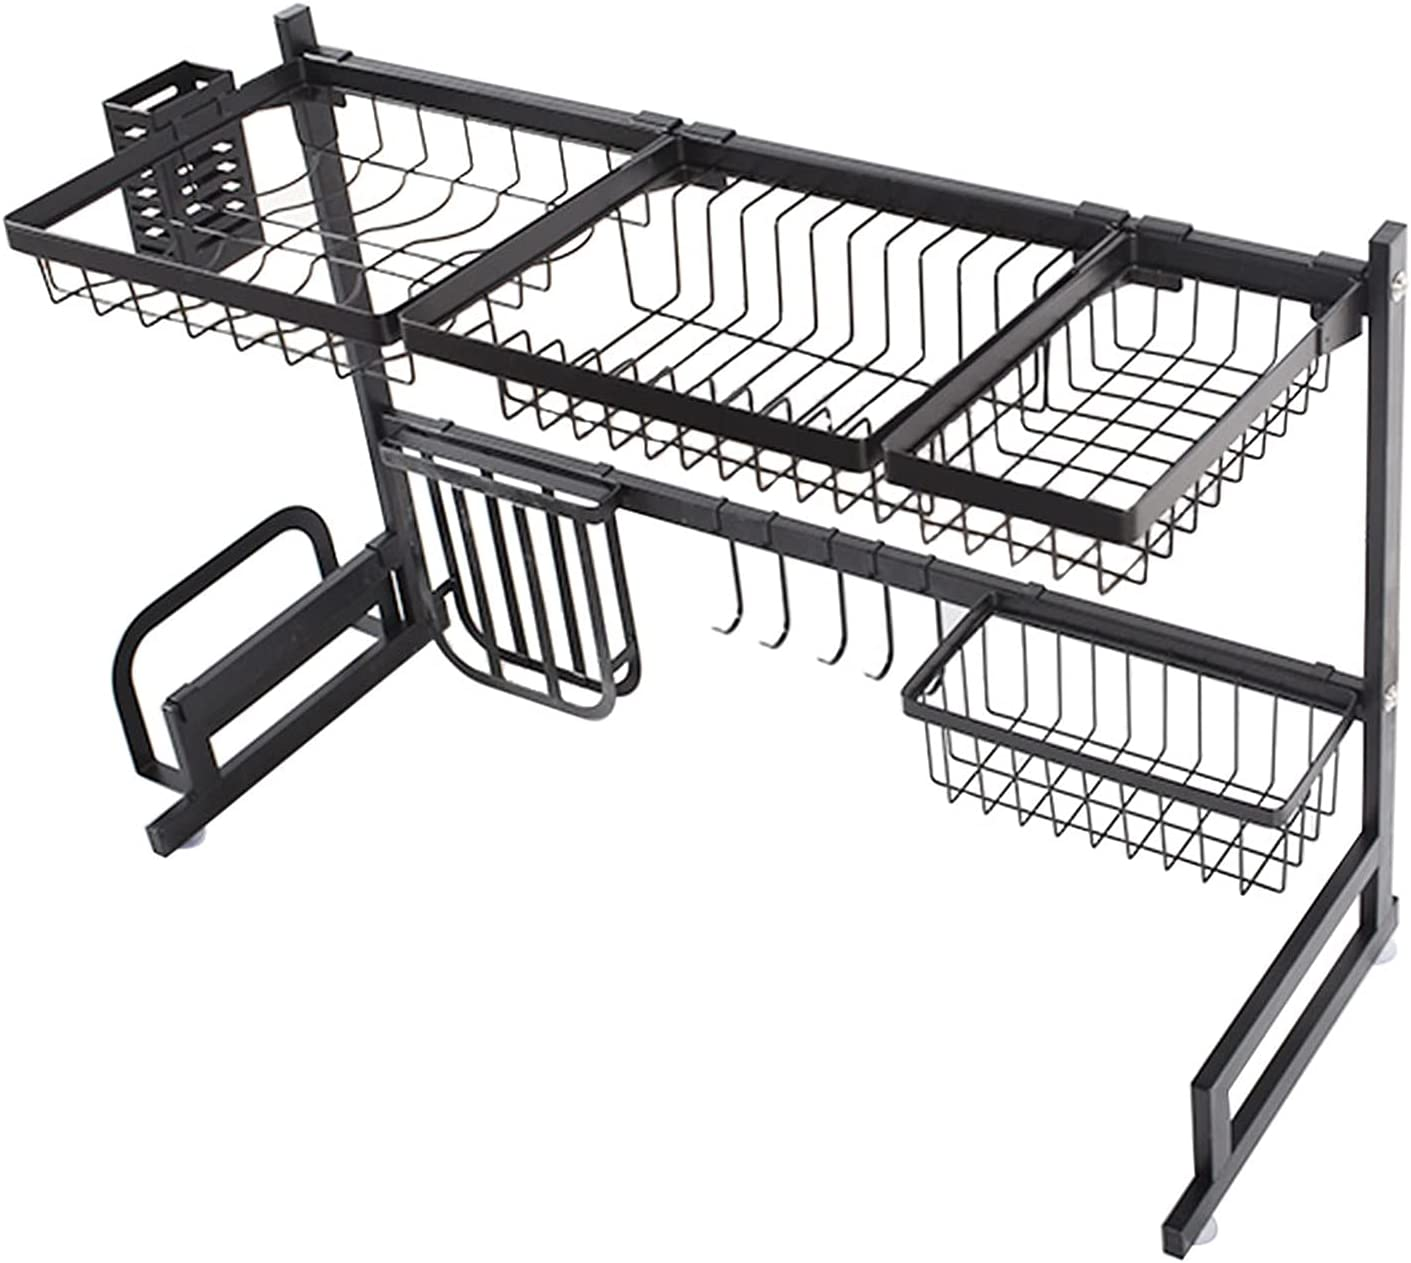 service mitoharet Over The Sink New York Mall Dish Drying DIY Rack Tableware R 2-Layer